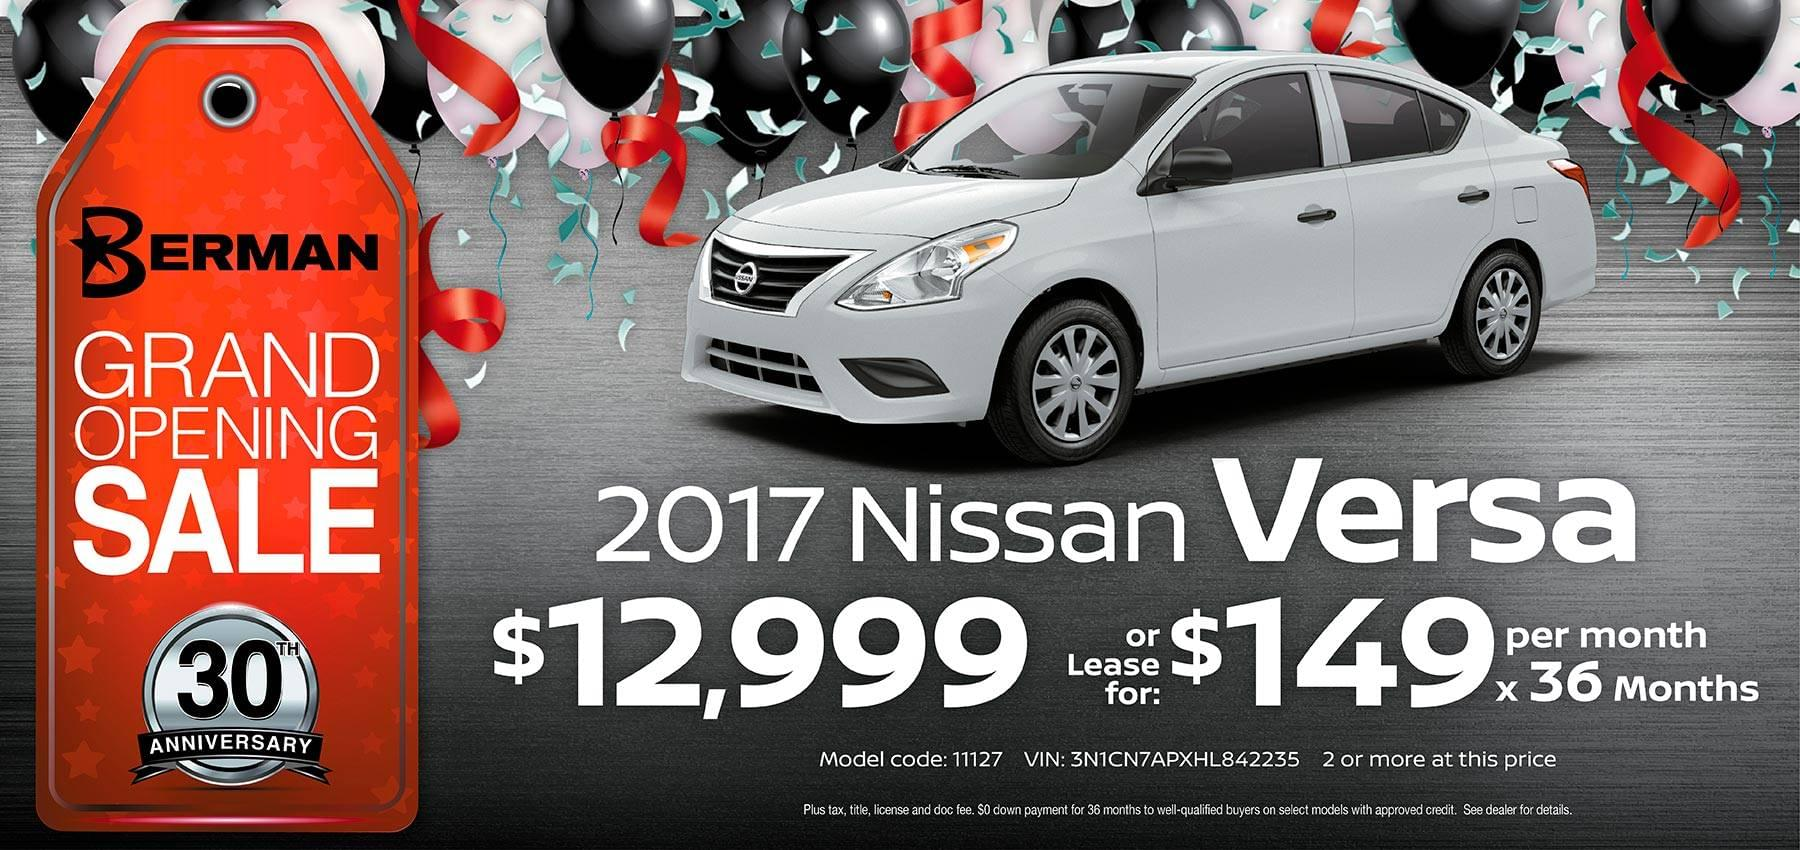 2017 Nissan Versa Berman Nissan of Chicago February Grand Opening Sale